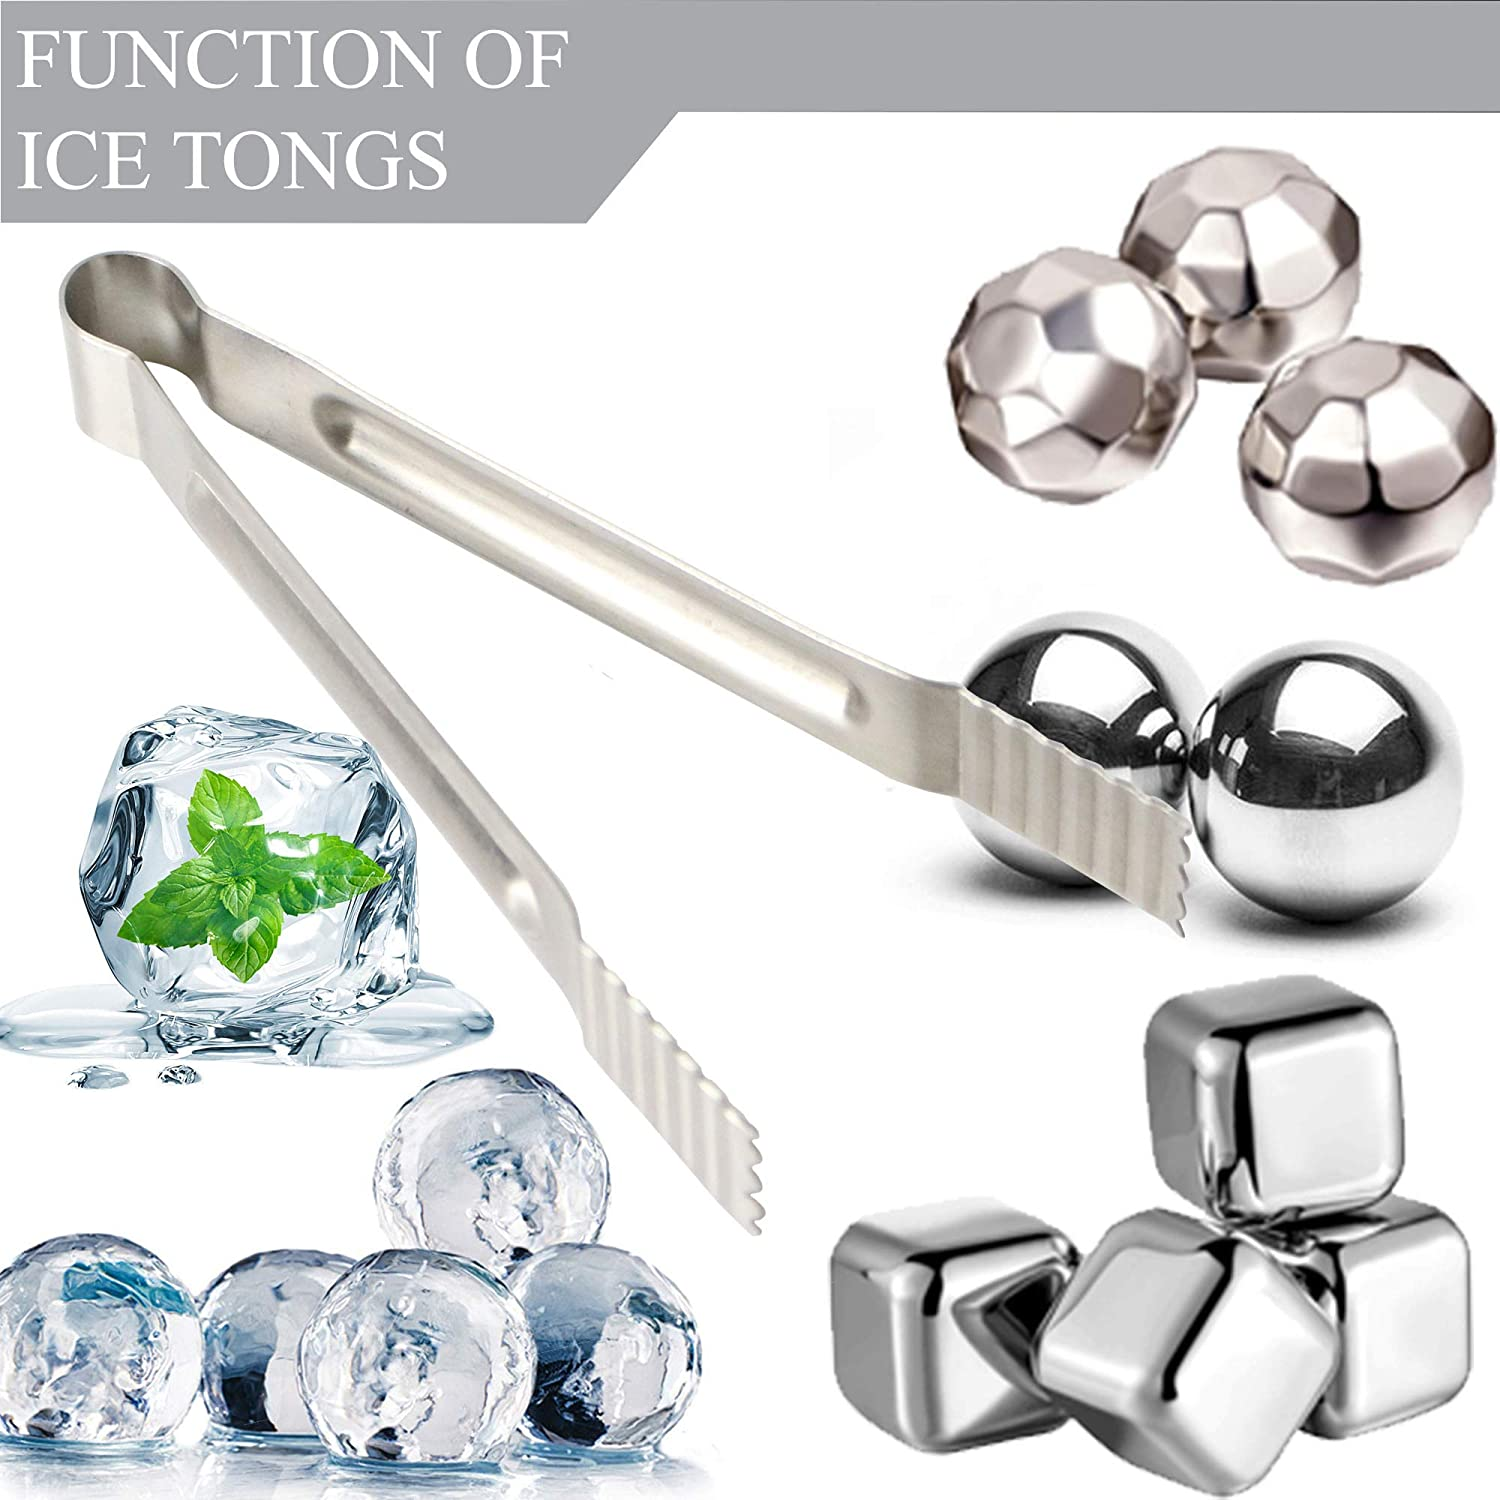 |Set of 2| Bar Mini Serving Sugar Tongs for Home Restaurant /& Party Kitchen Silver Catering Ice Bucket Food 7 Premium Stainless Steel Ice Tongs by Okey Kitchen